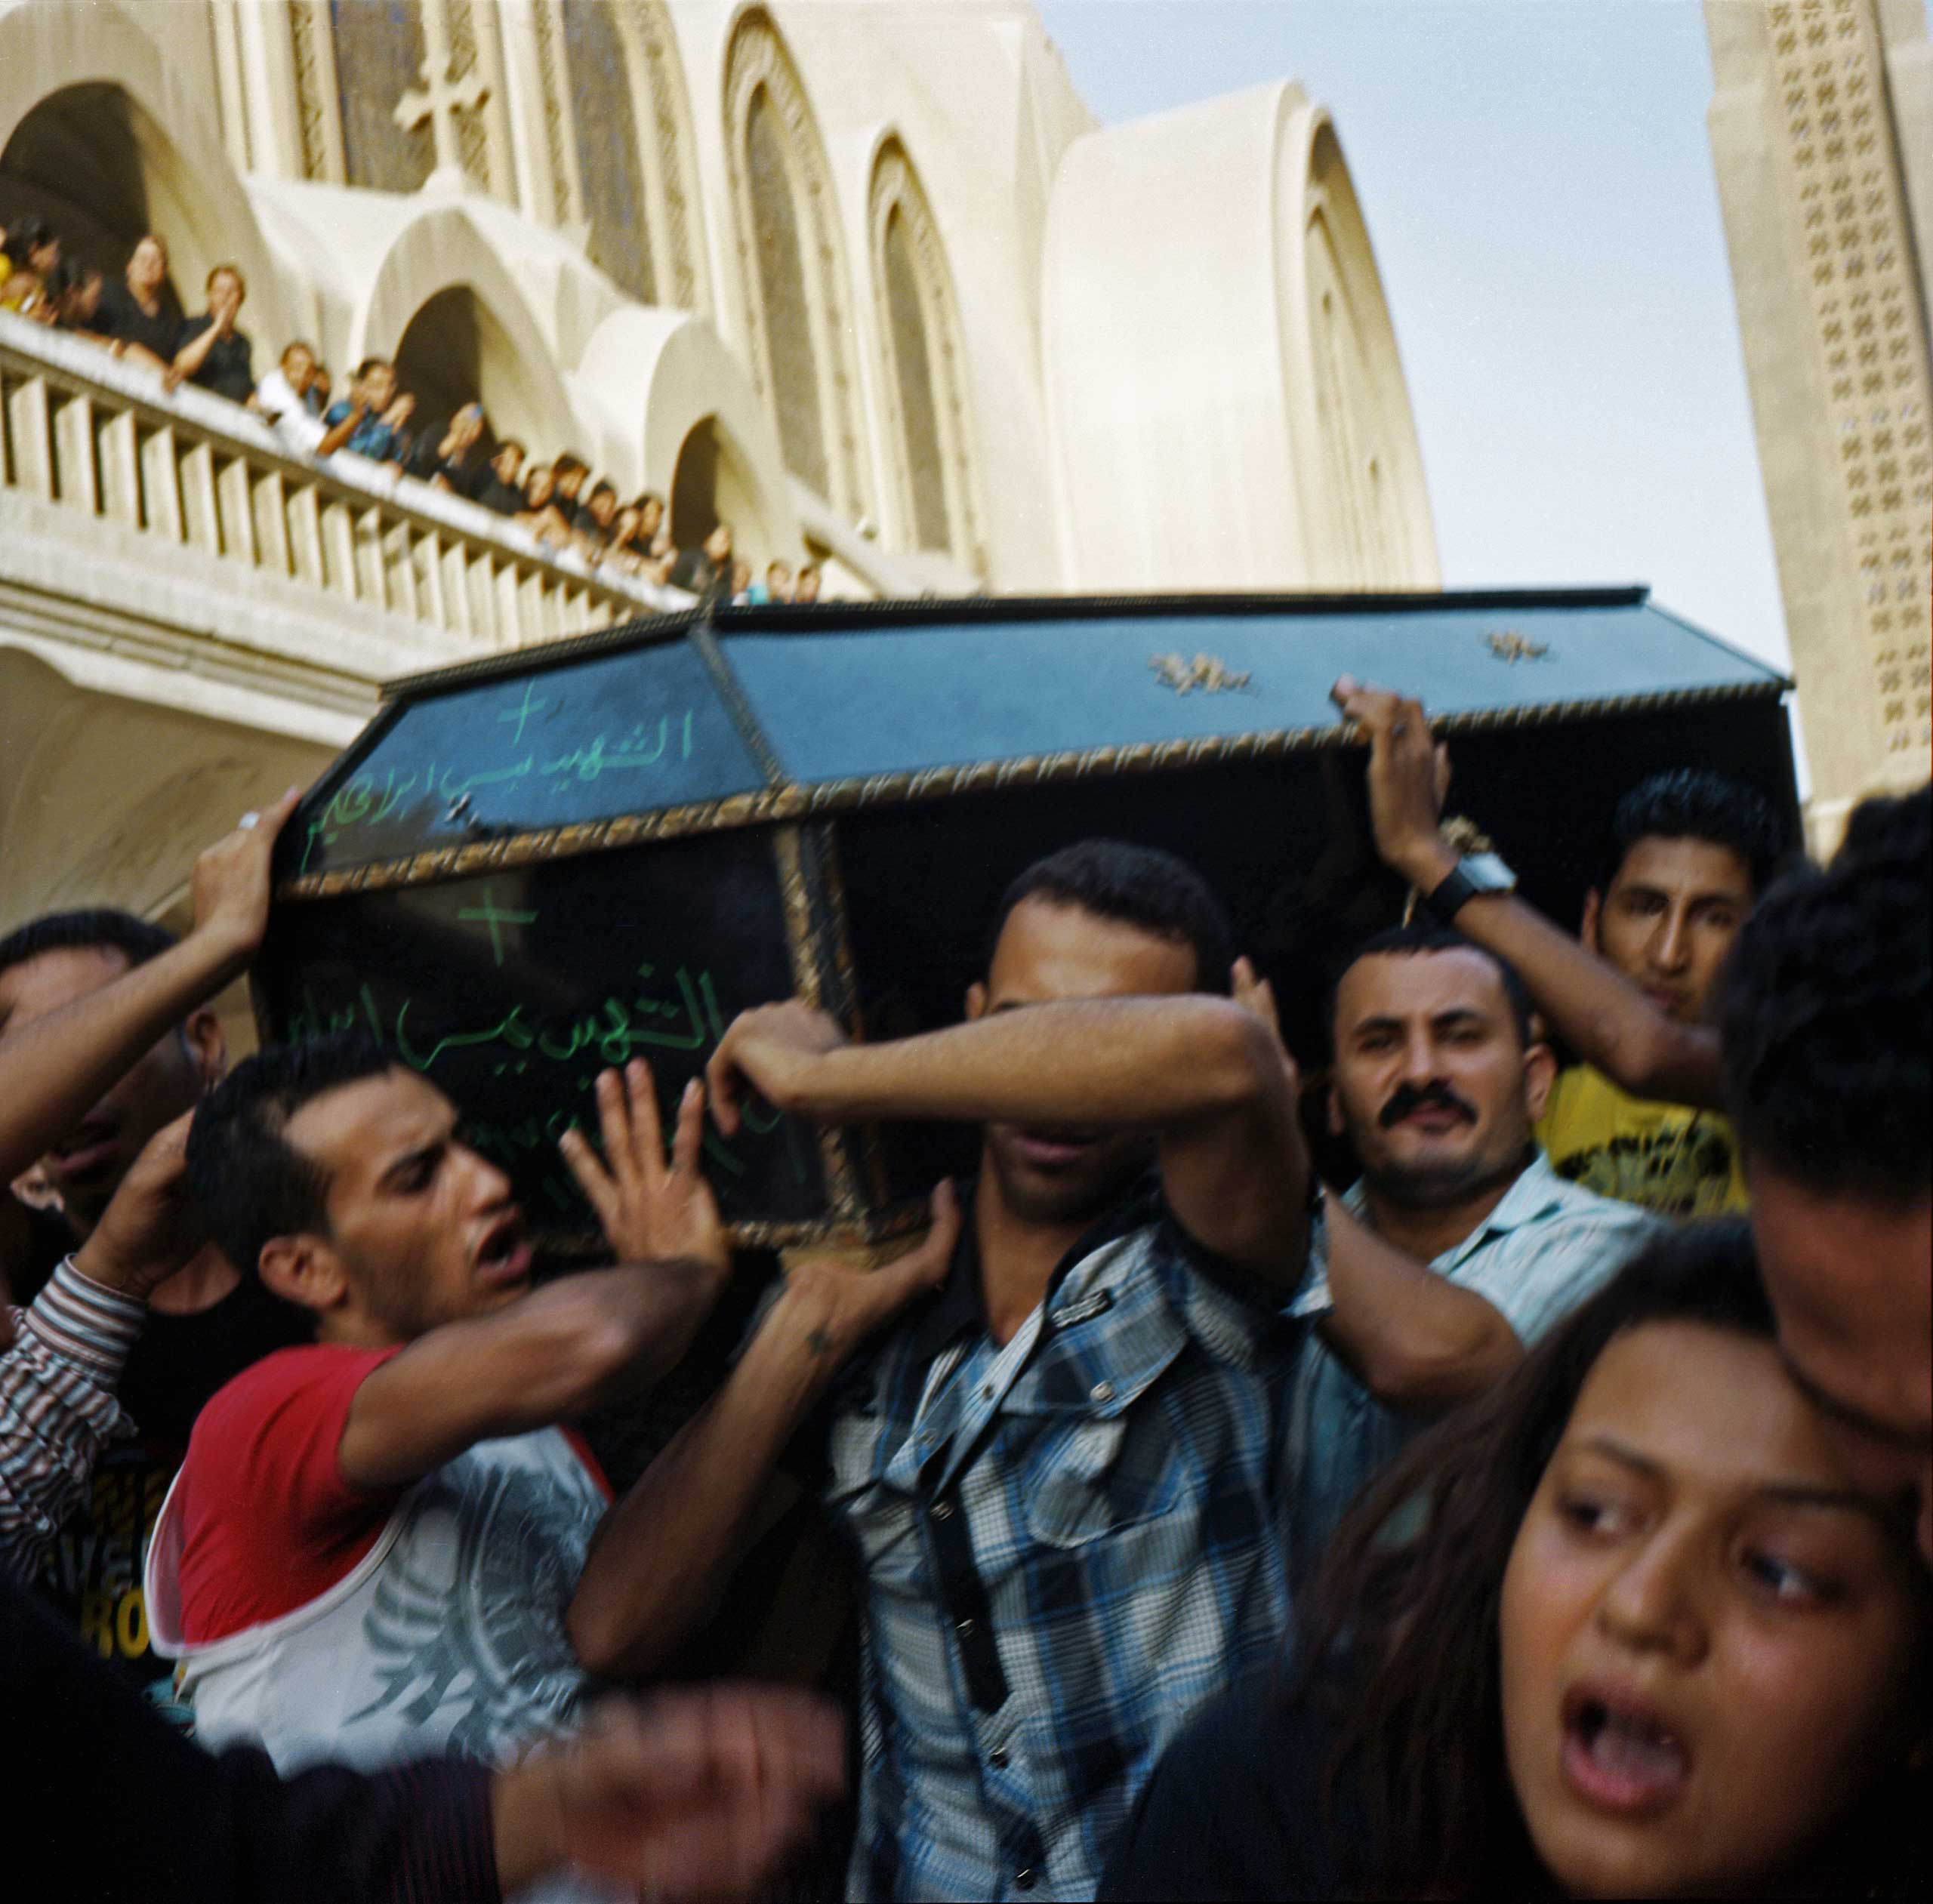 Relatives of victims carrying coffins out of the Abasseya Cathedral to be buried following violence that took place in front of Maspero TV building resulting in 28 mostly Coptic deaths and 212 injured. Oct., 2011